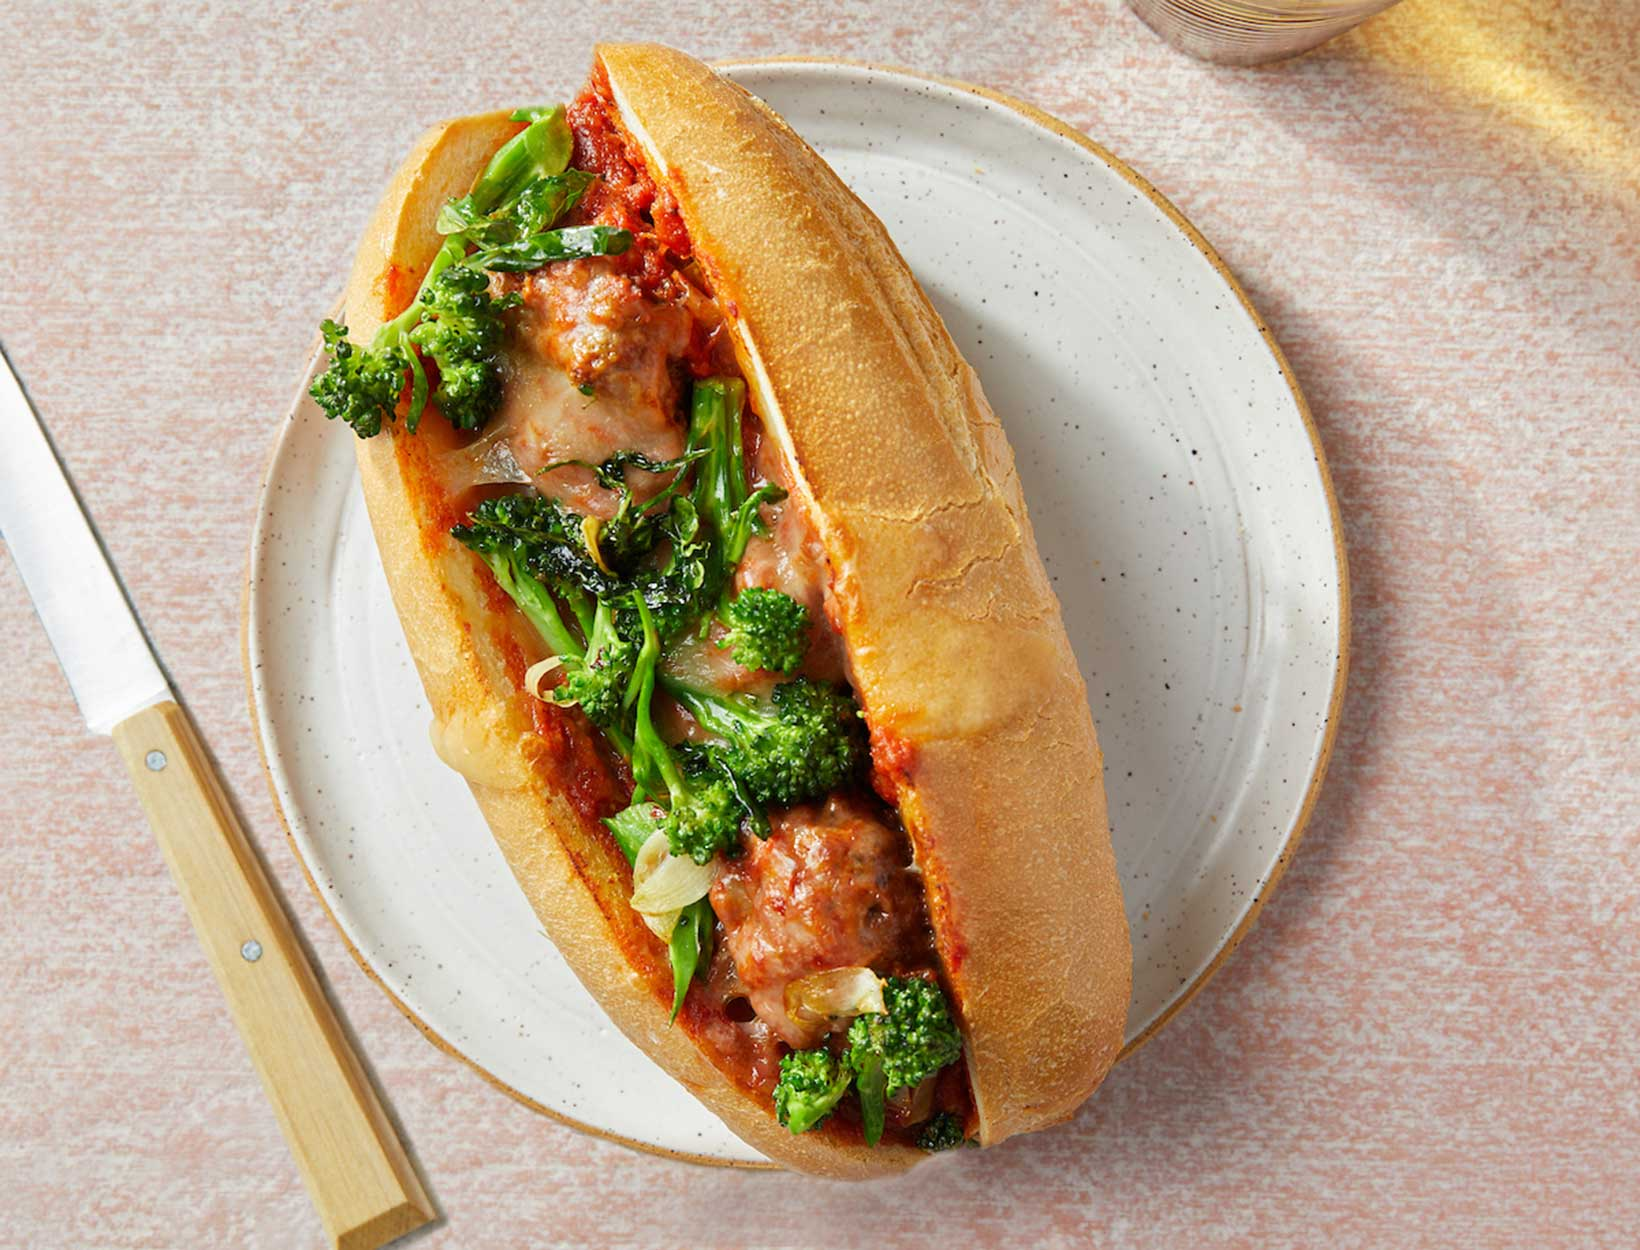 Veggie-Packed Meatball Subs with Garlicky Broccoli Rabe